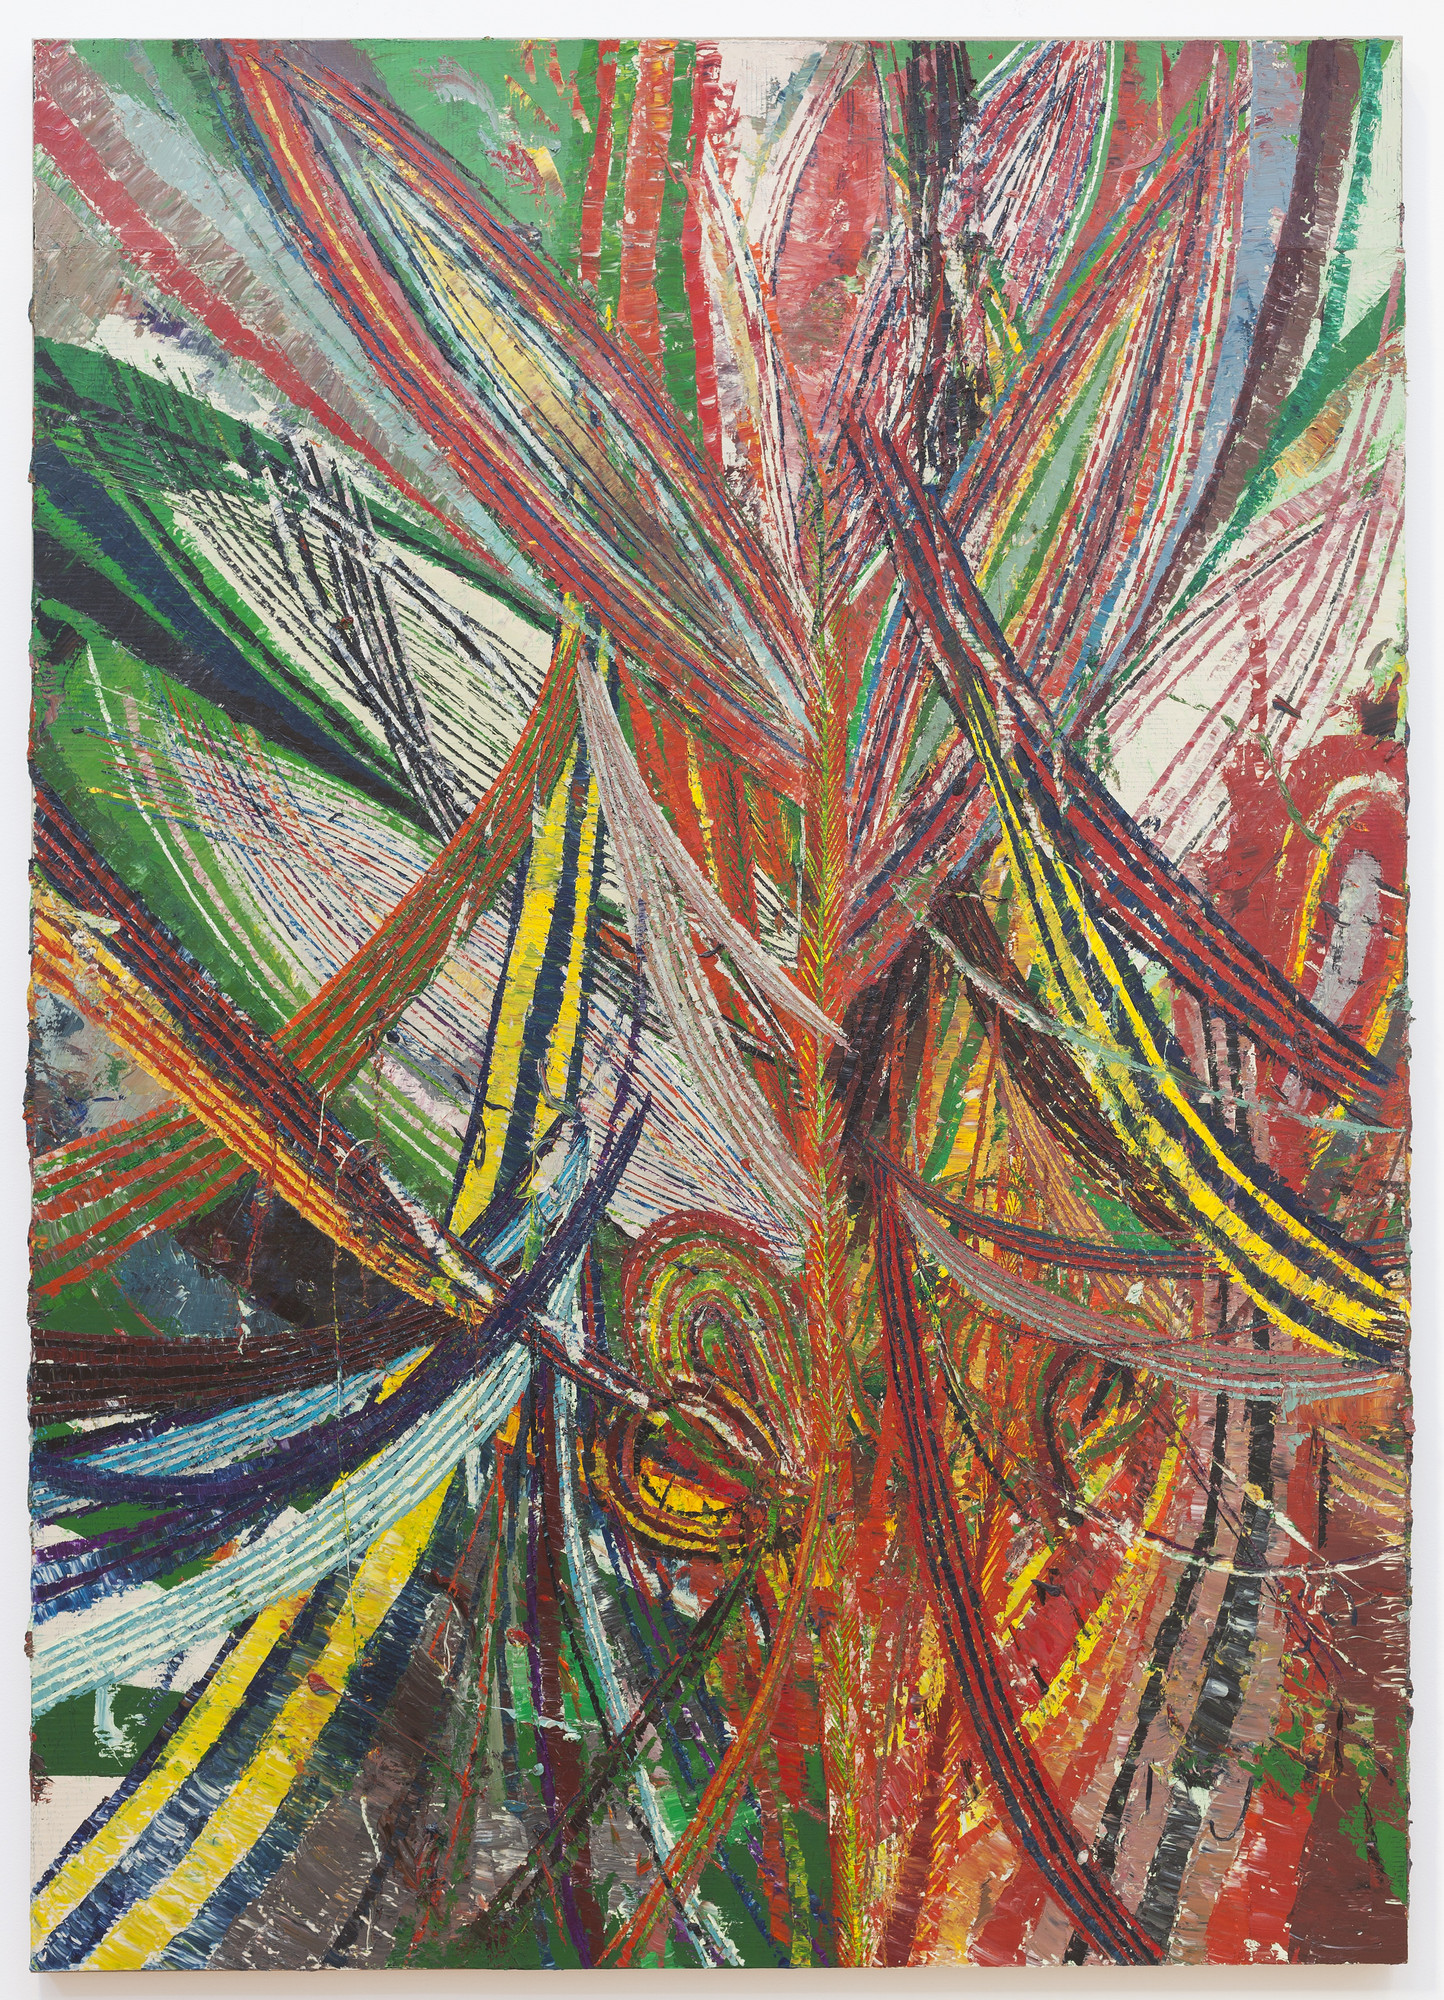 Mark Grotjahn. Untitled (Circus No. 3 Face 44.20). 2013